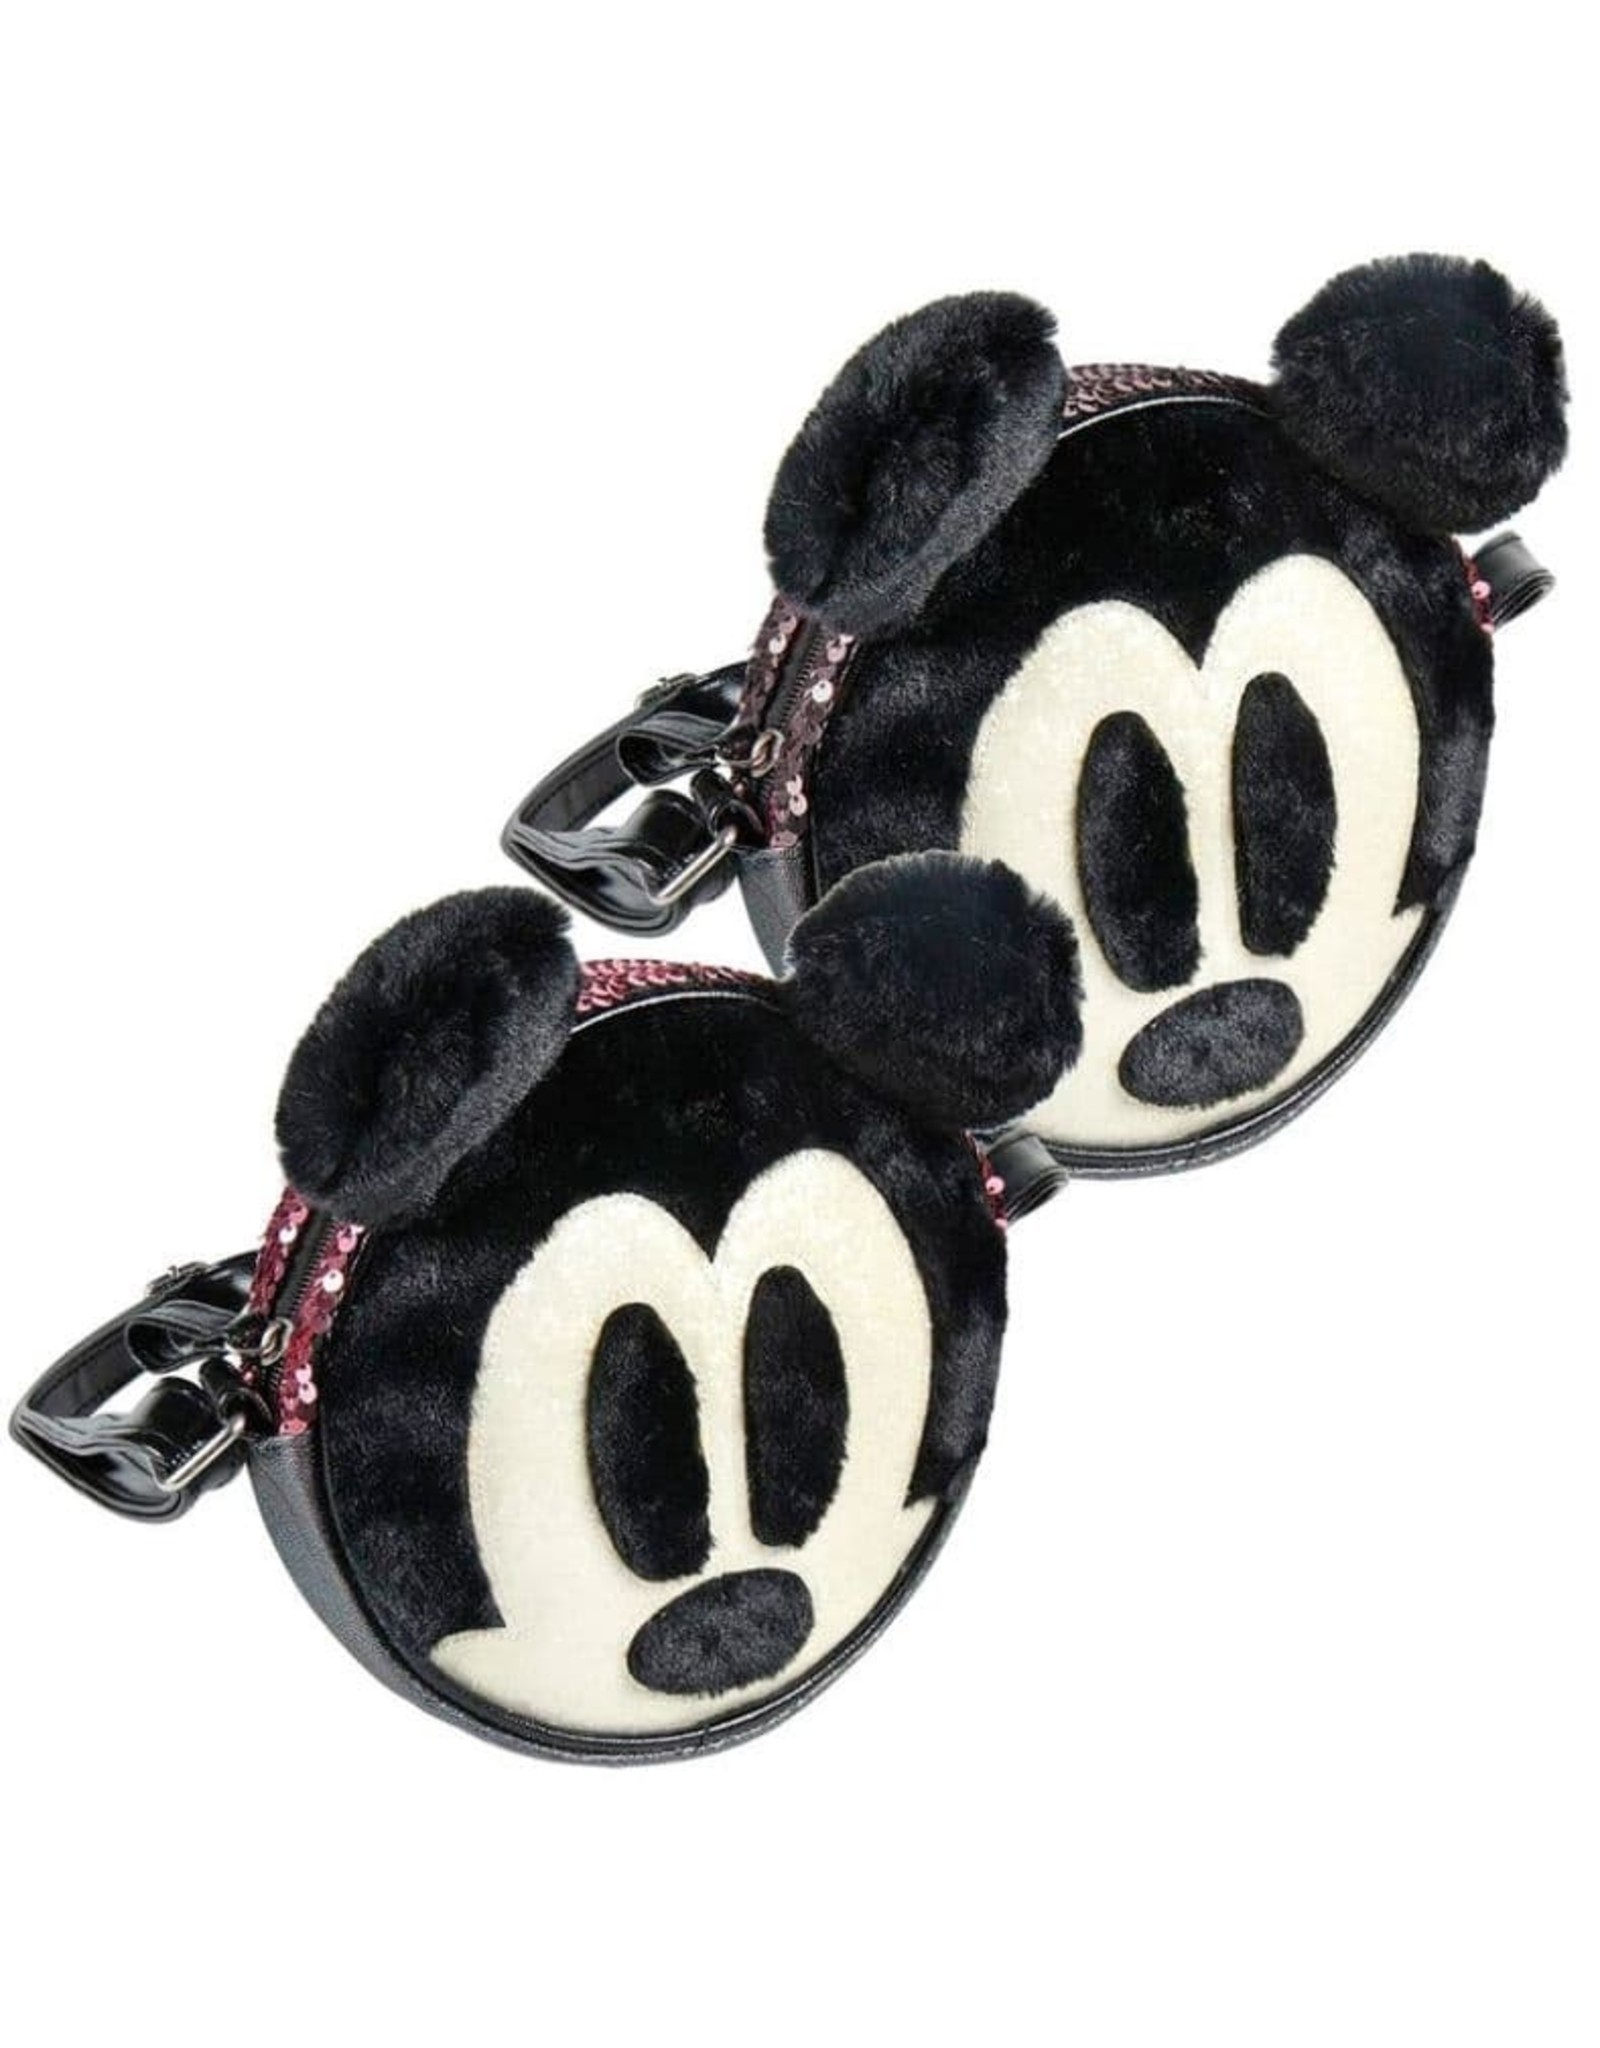 Disney Disney bags - Disney round shoulder bag Mickey with plush and sequins